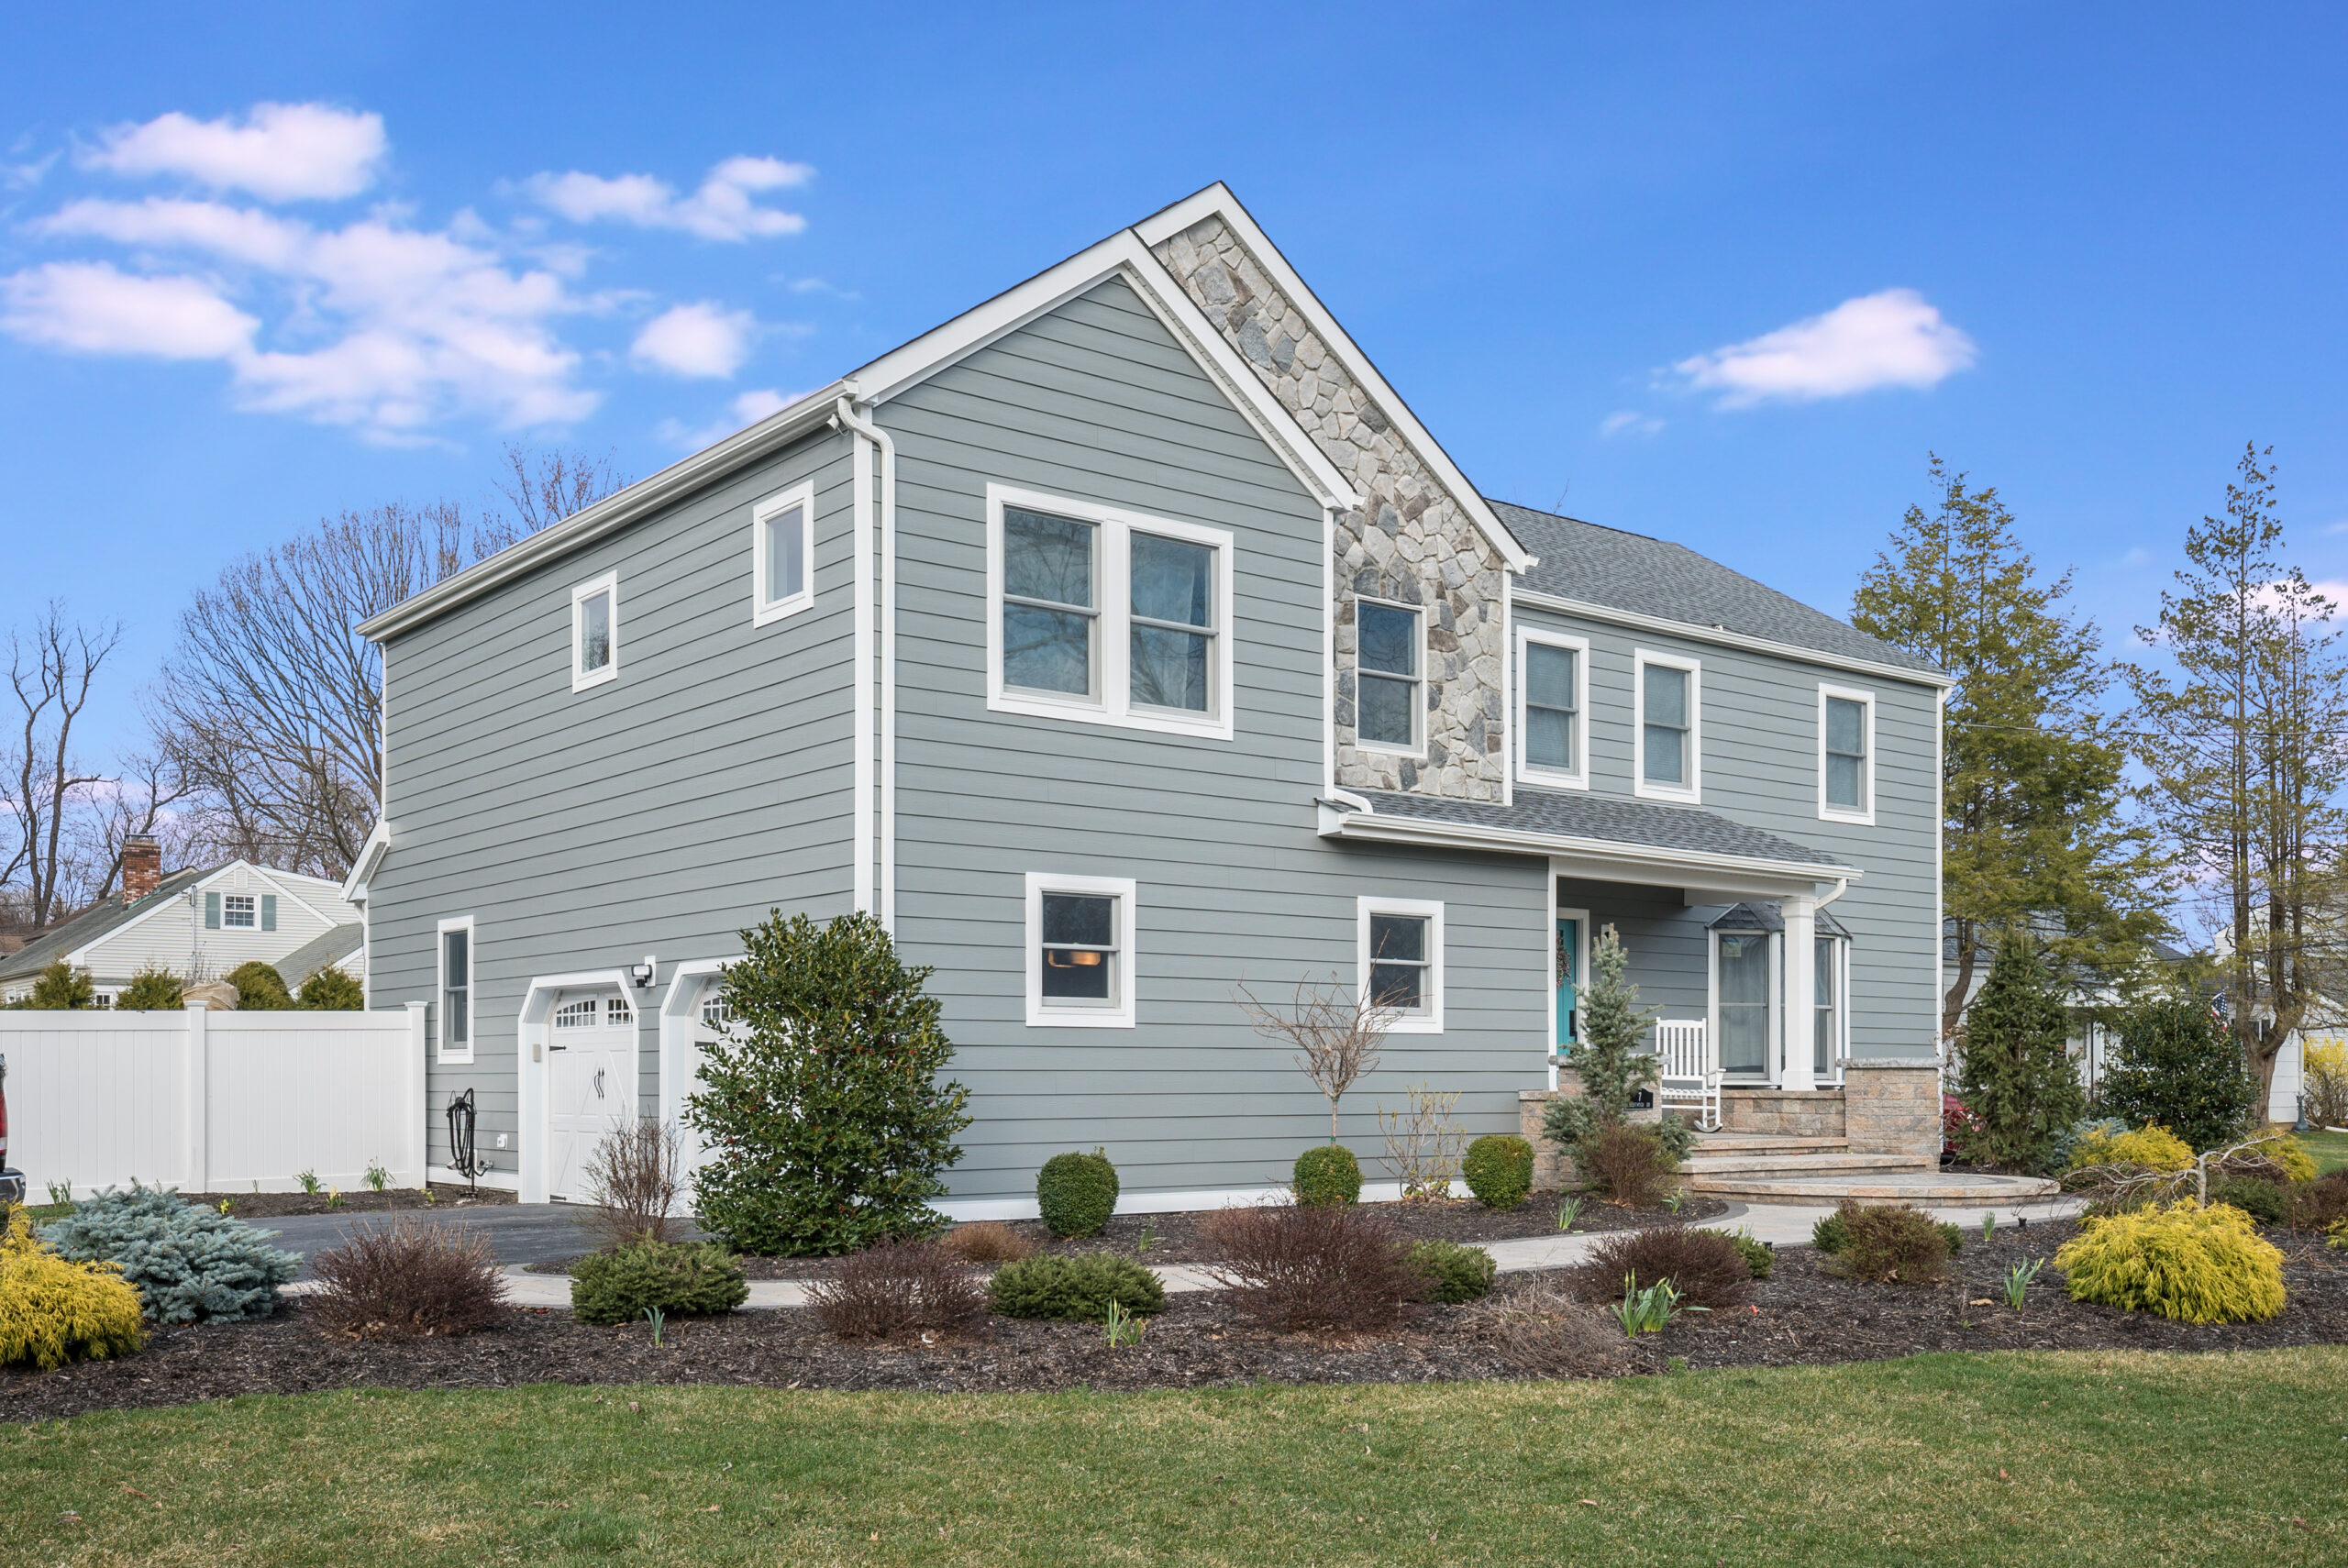 Renovated New Jersey home.